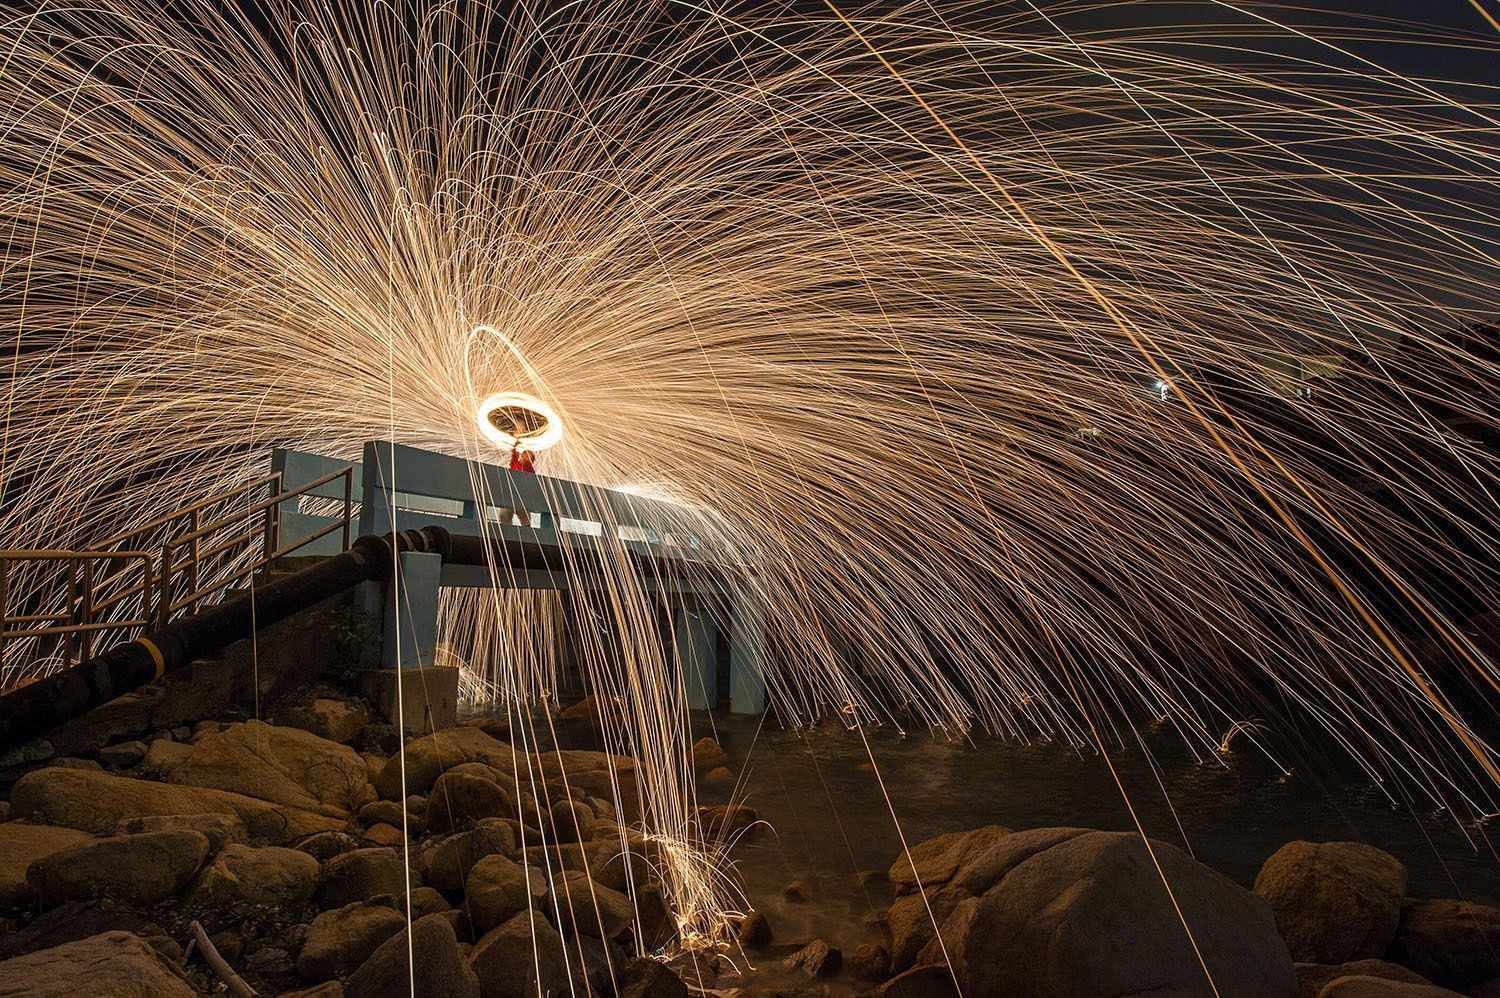 Engagement picture fun spinning steel wool on fire | Steel wool ...